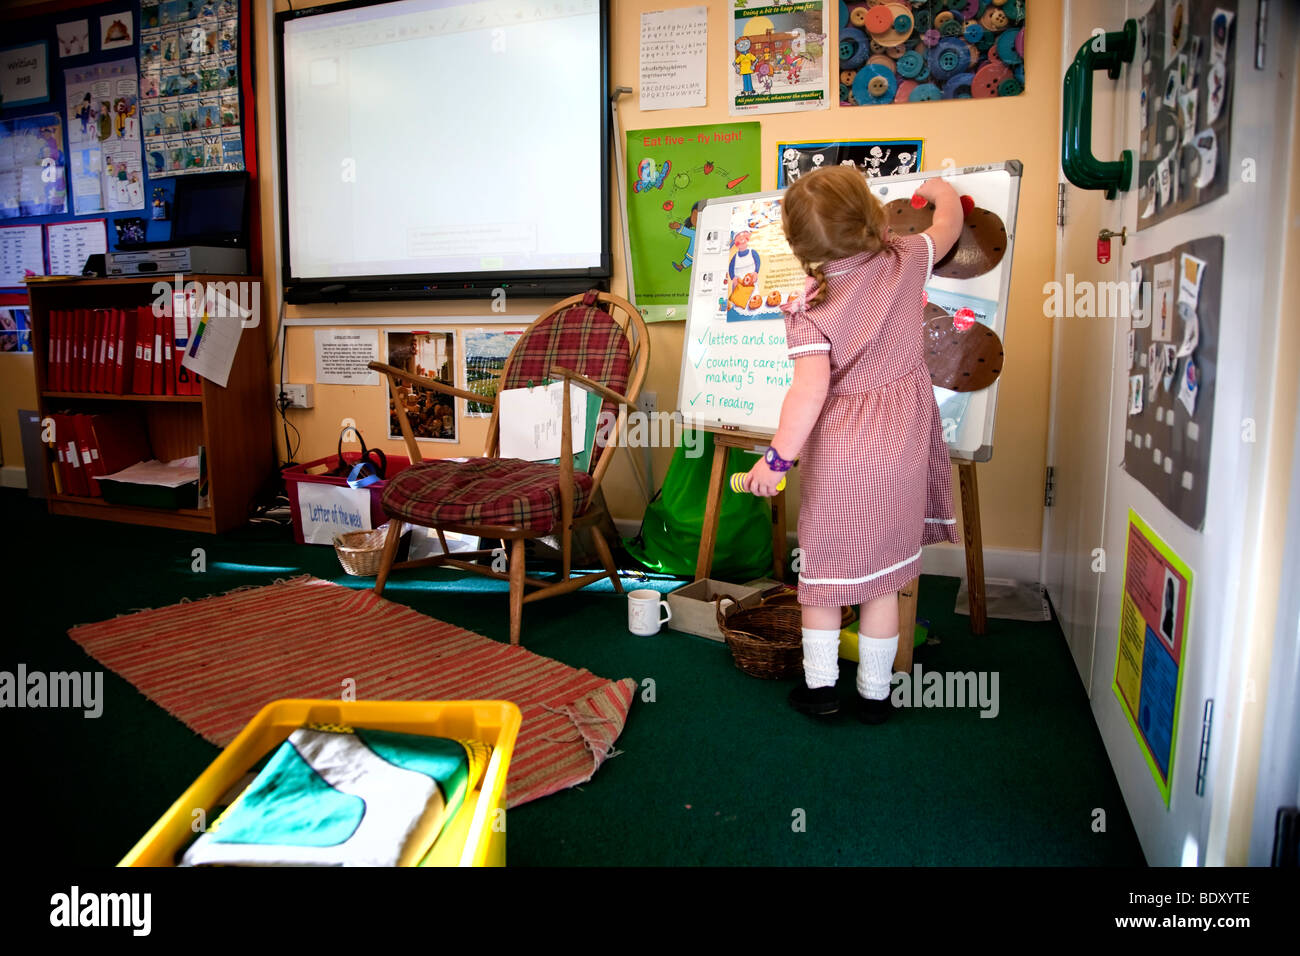 4 year old girl at whiteboard in foundation stage classroom in uk primary school - Stock Image